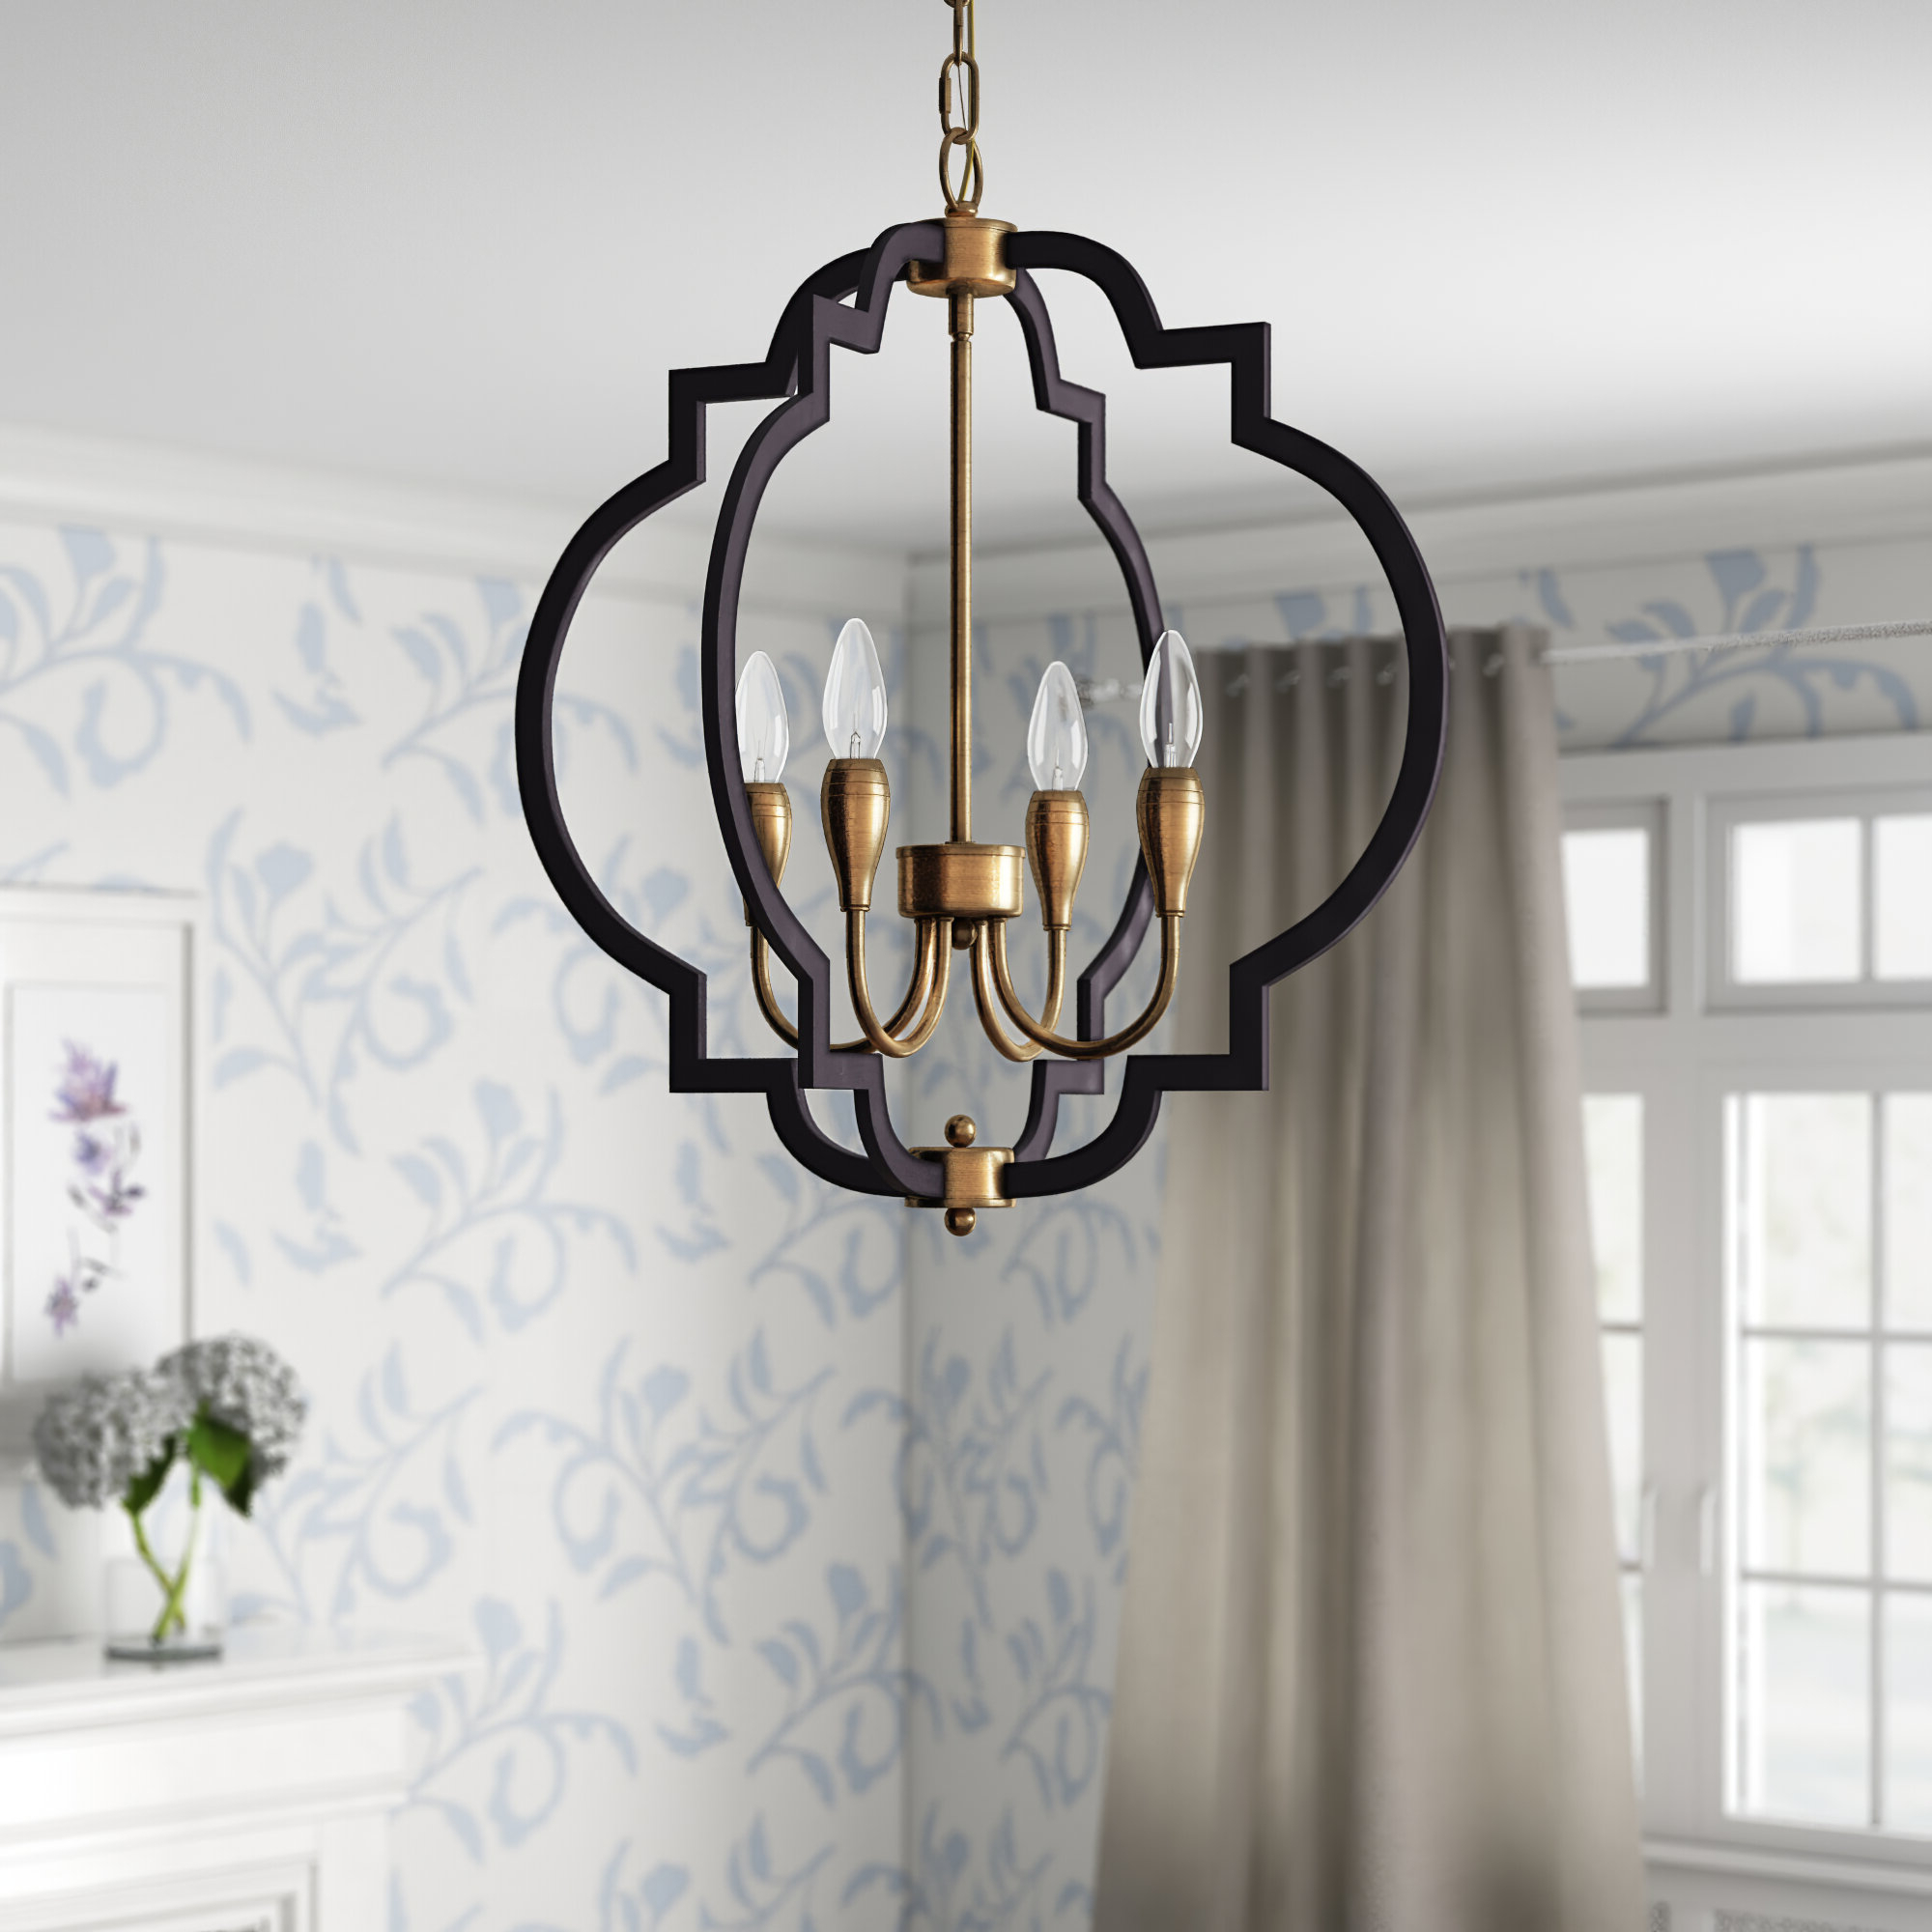 Newest Reidar 4 Light Geometric Chandeliers Inside Astin 4 Light Geometric Chandelier (View 2 of 25)